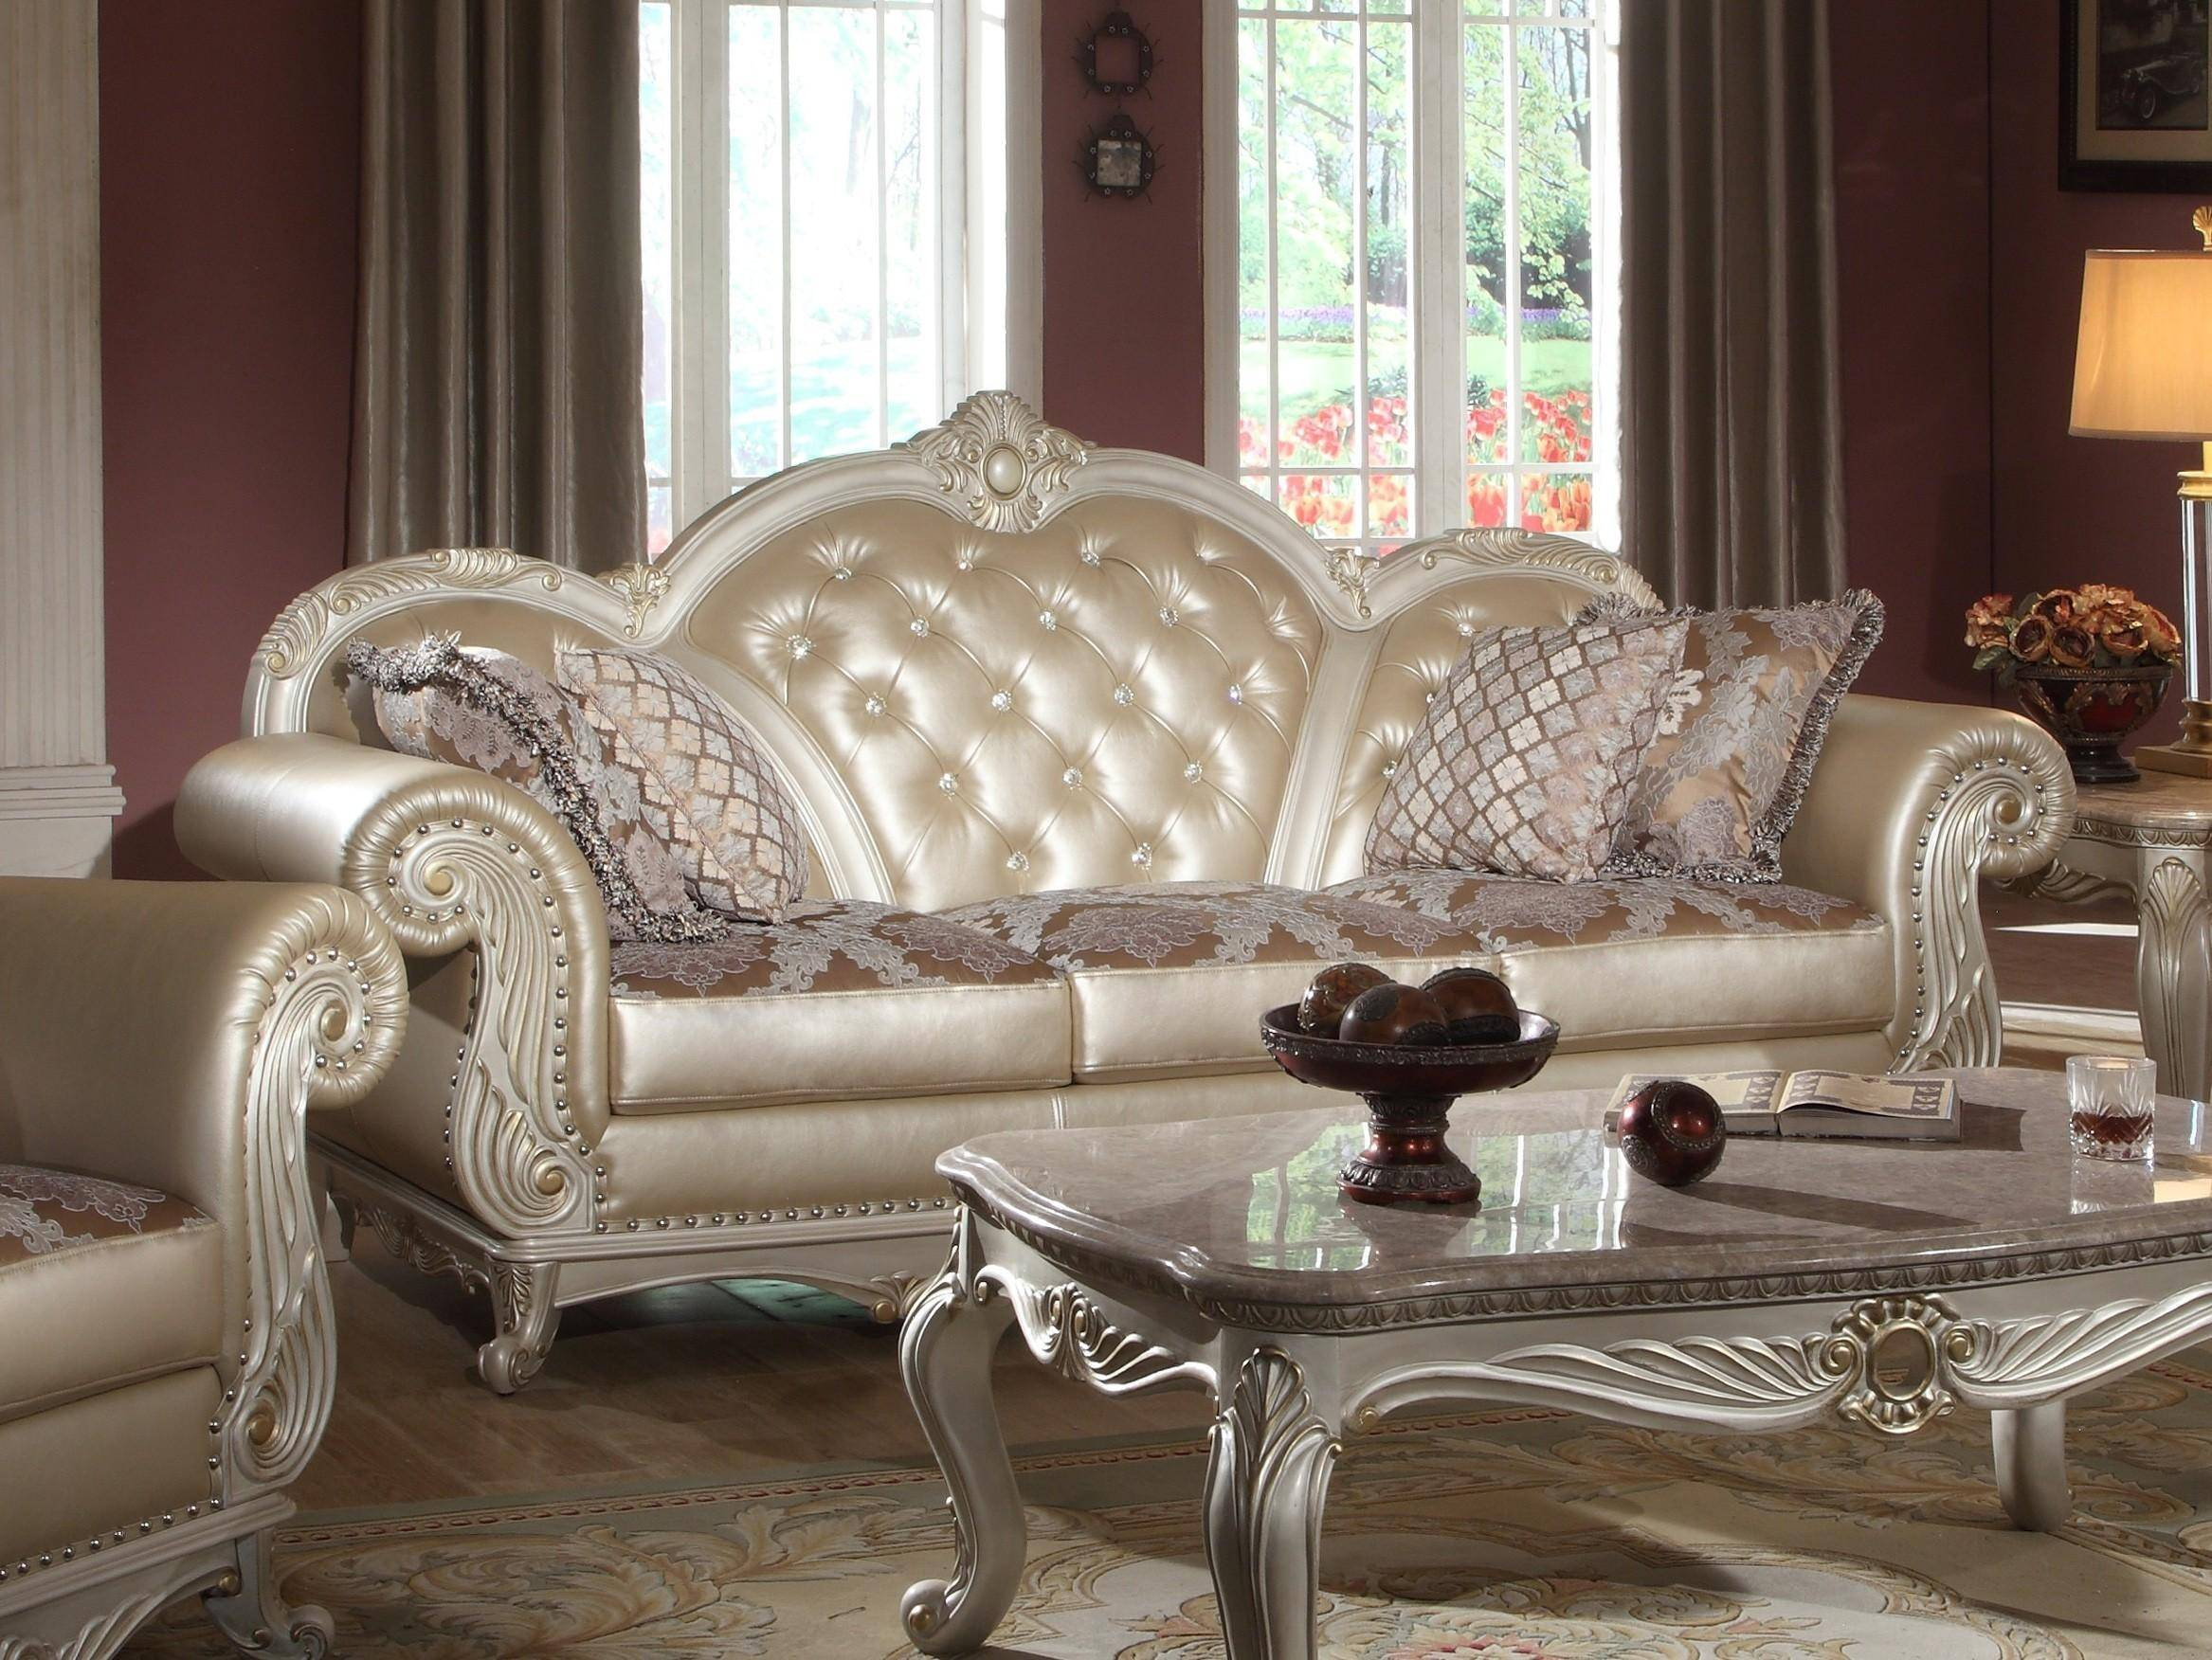 Meridian 652 Marquee Pearl White Living Room Sofa Set 3Pcs With Regard To Sofa Chairs For Living Room (View 10 of 15)